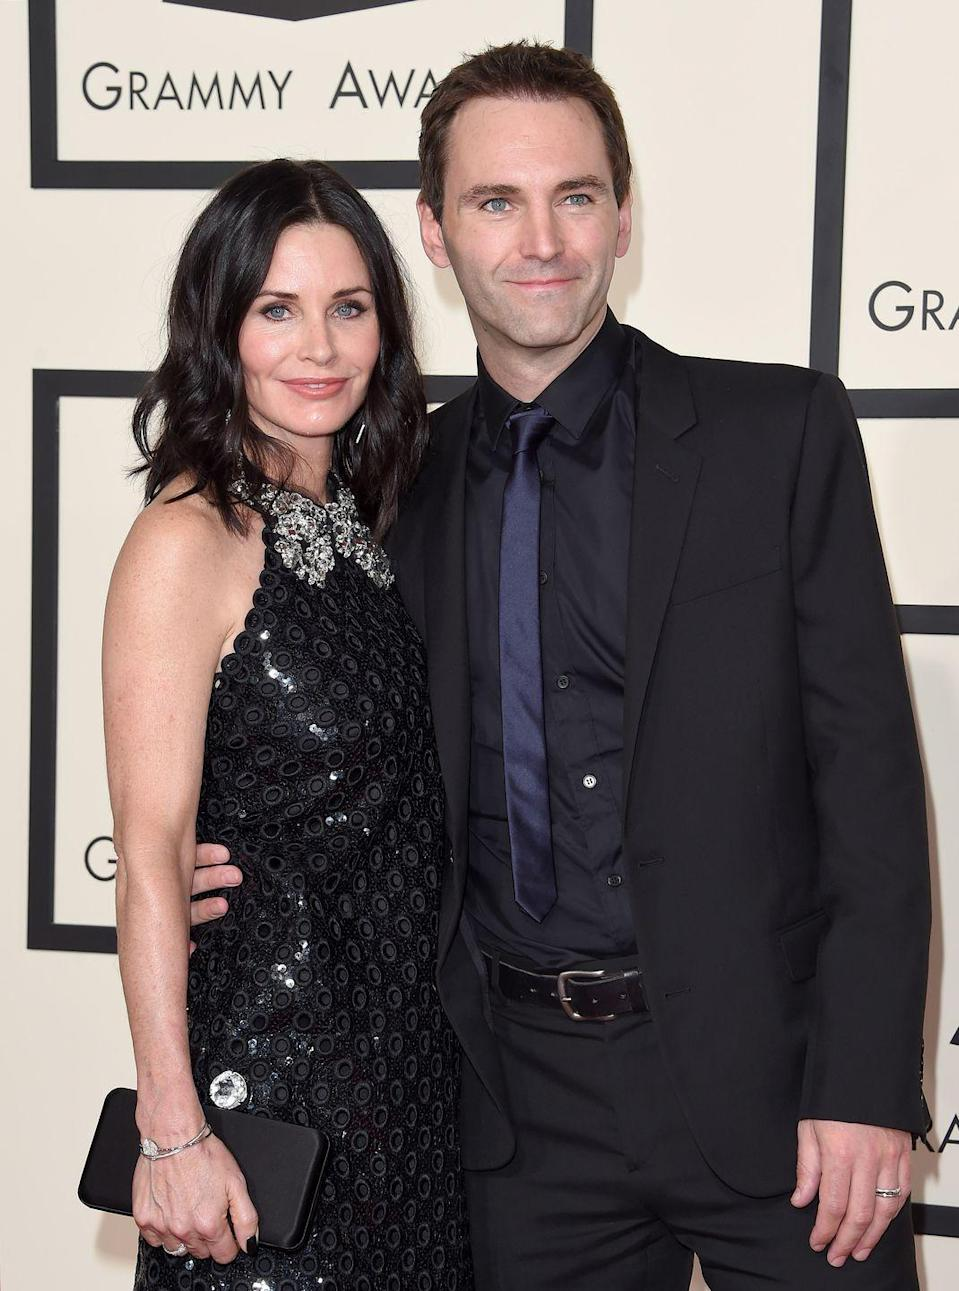 "<p>These two were set up by Grammy-winning artist Ed Sheeran of all people. ""My housemate [Snow Patrol's Johnny McDaid] who I've lived with for a year, I introduced him to Courteney Cox. They started dating and [are] crazy about each other,"" Sheeran told <a href=""http://uk.omg.yahoo.com/gossip/the-bike-shed/ed-sheeran-admits-passed-out-drunk-jennifer-anistons-house-flatmate-snow-patrol-johnny-mcdaid-courteney-cox-exclusive-164856545.html?"" data-ylk=""slk:Yahoo;outcm:mb_qualified_link;_E:mb_qualified_link;ct:story;"" class=""link rapid-noclick-resp yahoo-link"">Yahoo</a>.</p><p>The pair got engaged in 2014. Despite splitting briefly, they are back on and it's rumored <a href=""https://metro.co.uk/2018/06/03/jennifer-aniston-will-courteney-coxs-maid-honour-wedding-snow-patrols-johnny-mcdaid-7600791/"" rel=""nofollow noopener"" target=""_blank"" data-ylk=""slk:Jennifer Aniston will be maid of honor"" class=""link rapid-noclick-resp"">Jennifer Aniston will be maid of honor</a> at the wedding. We love a happy ending!<br></p>"